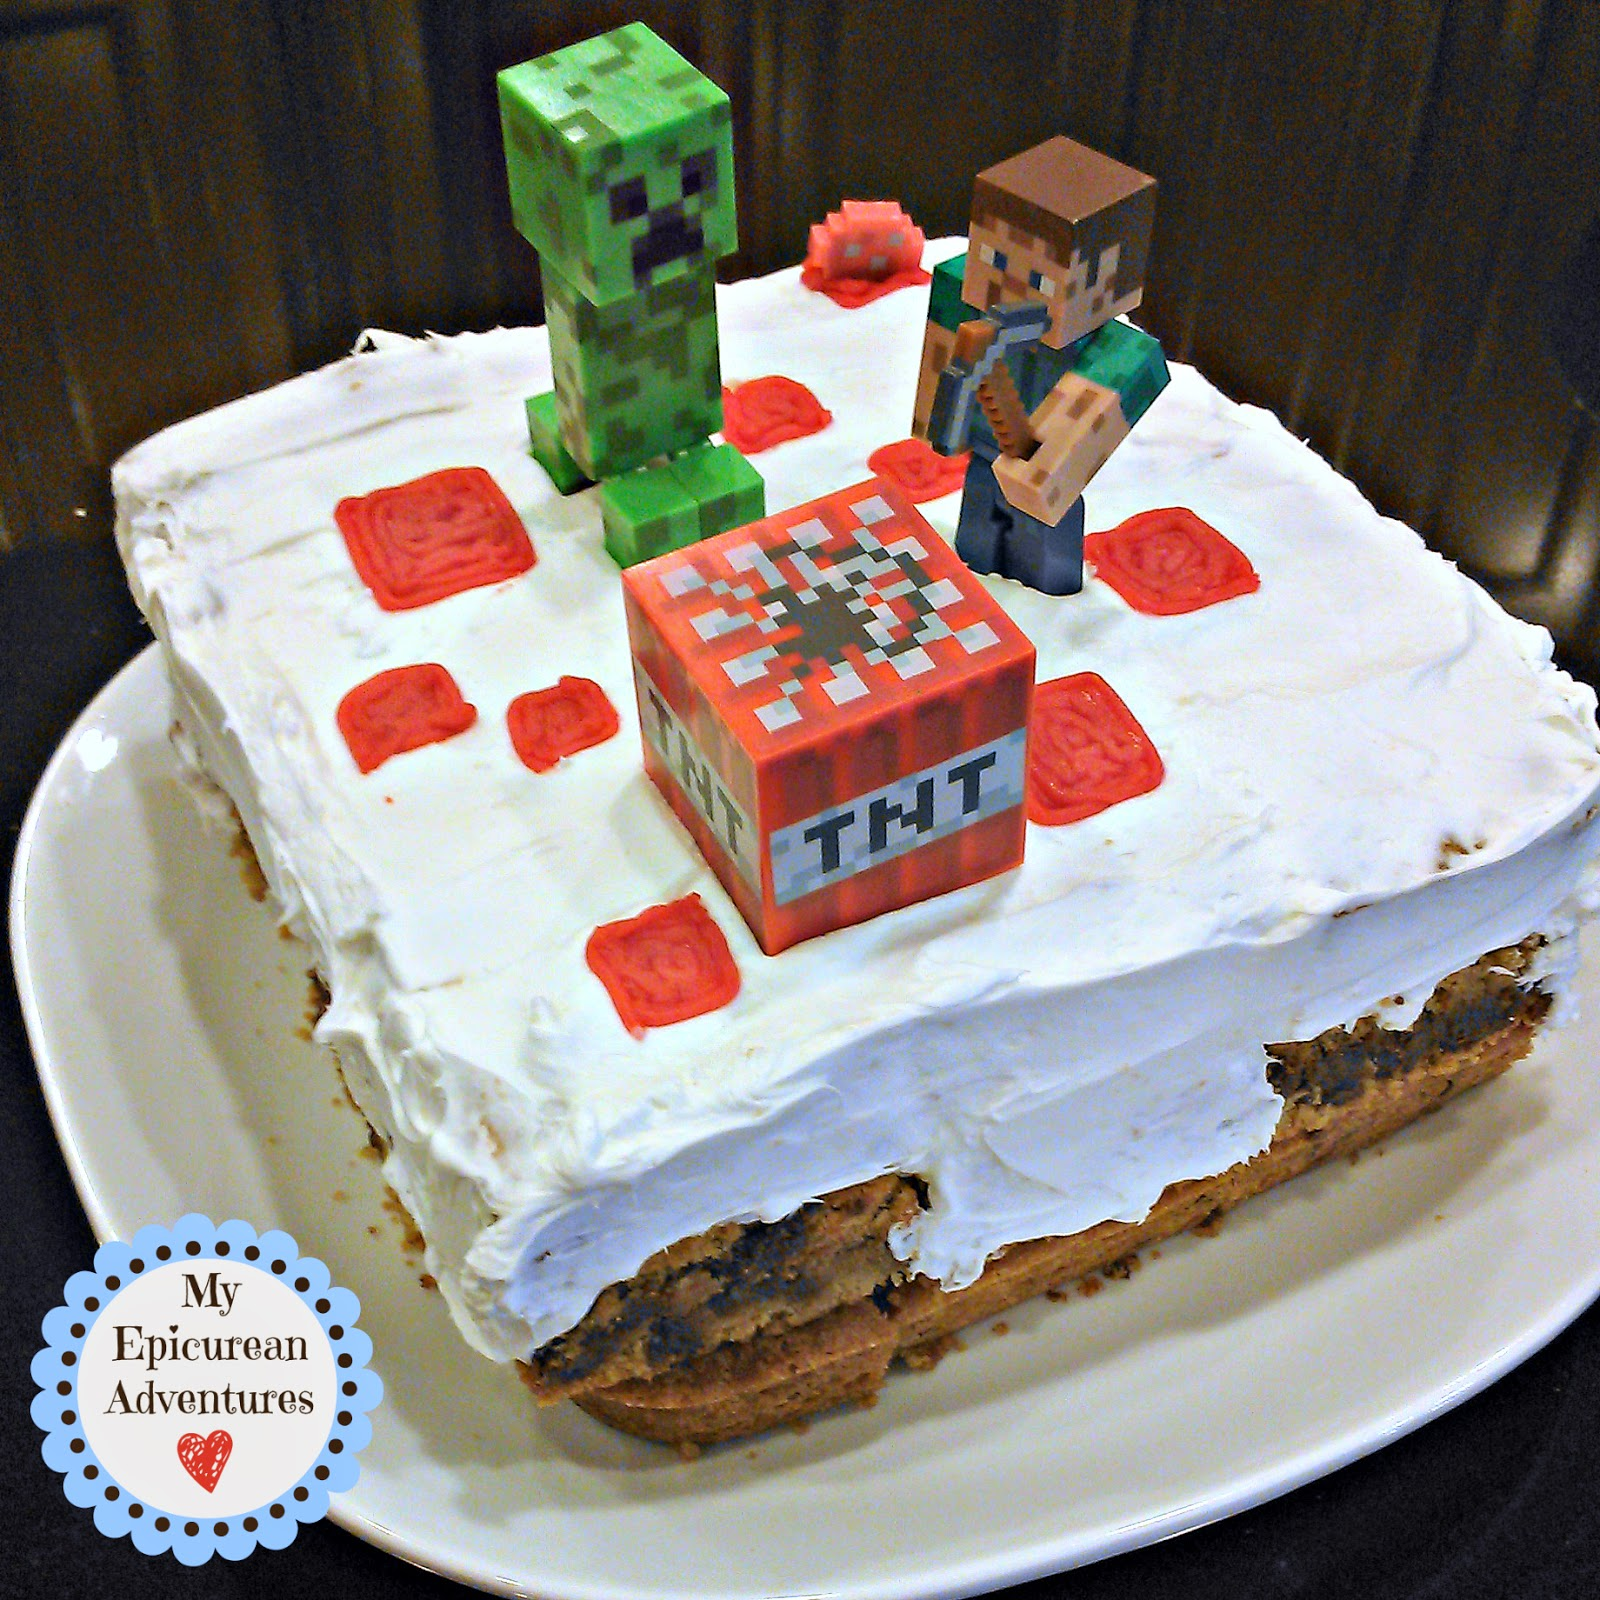 Homemade Minecraft Cookie Cake - Made healthier, cheaper and nut-free!